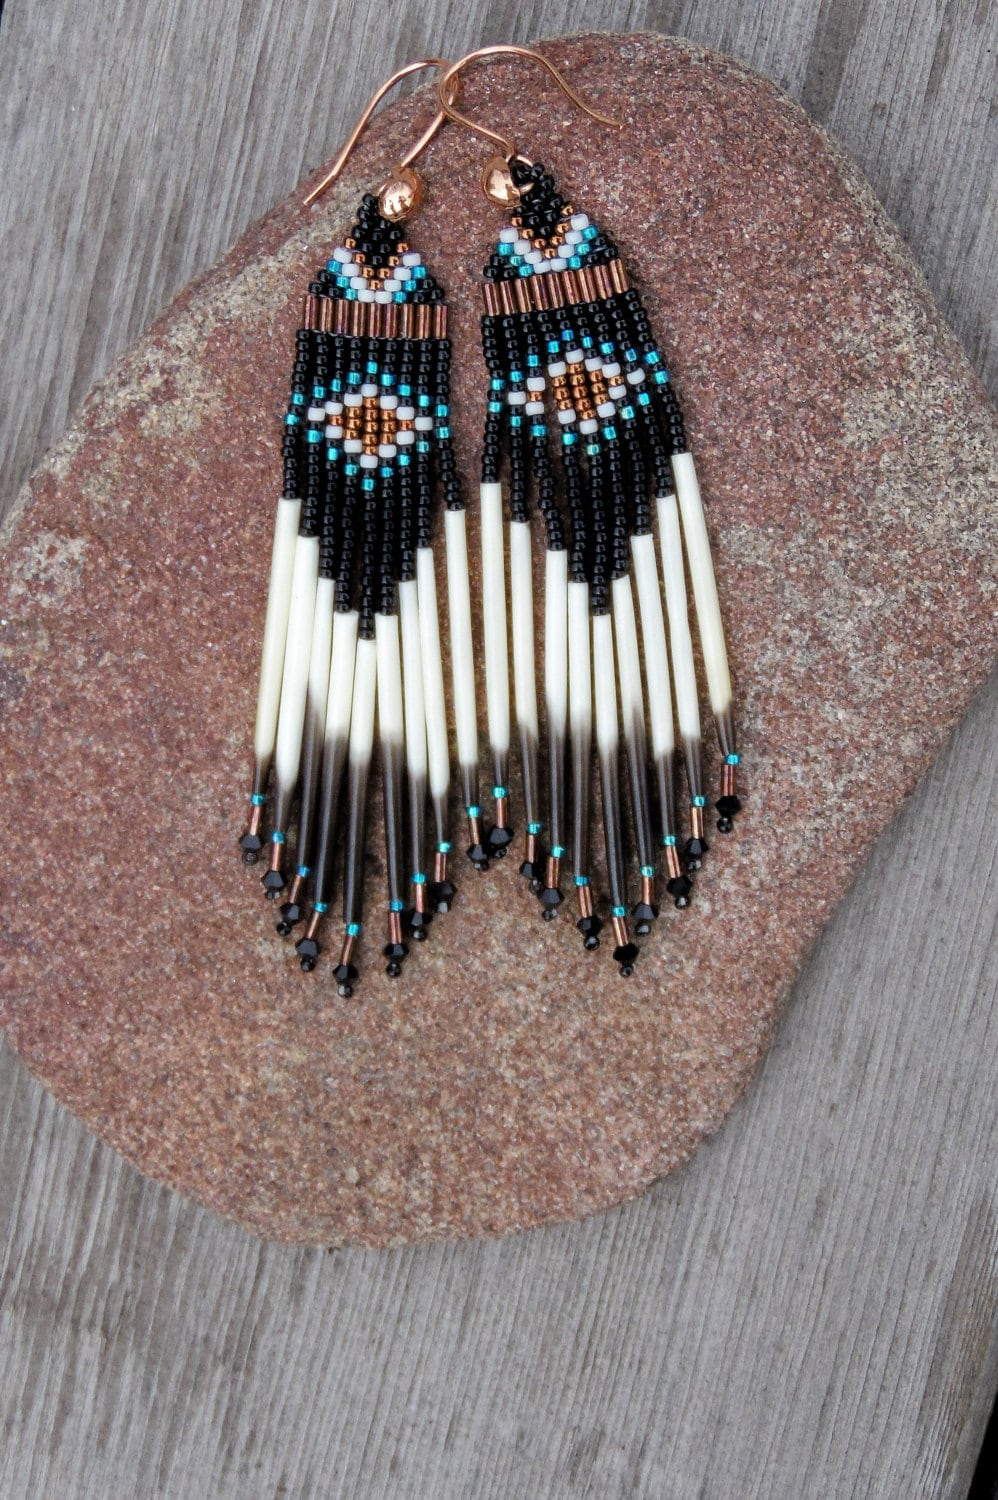 Porcupine Quill Jewelry Porcupine Quill Earrin...